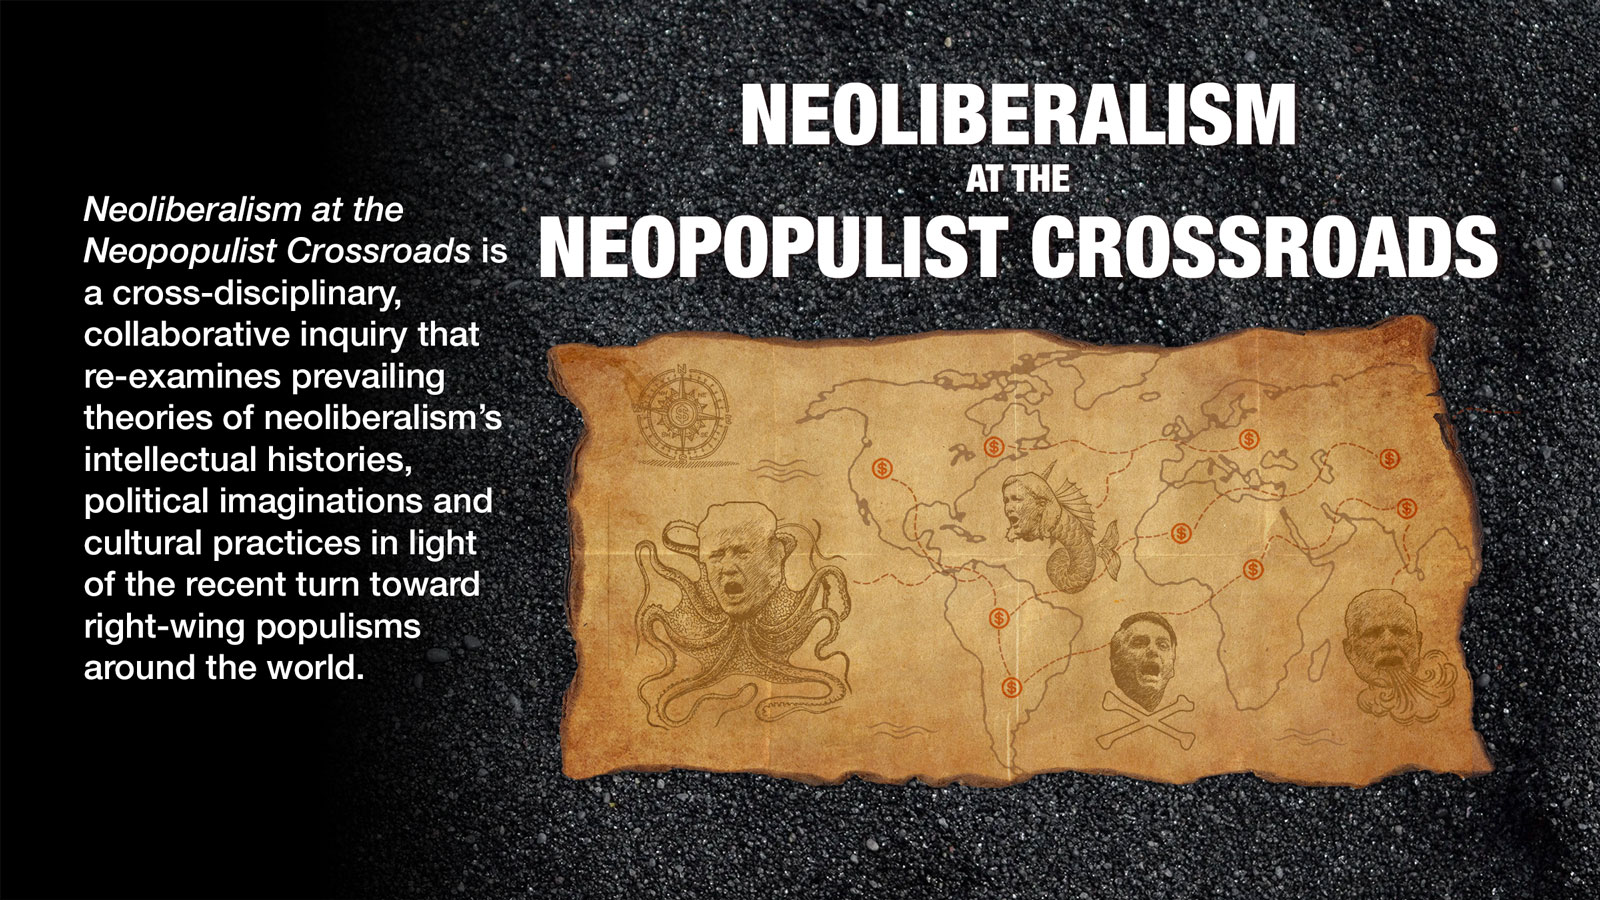 Neoliberalism at the neopopulist crossroads poster: a treasure map with the heads of right wing populist leaders on monstrous bodies.